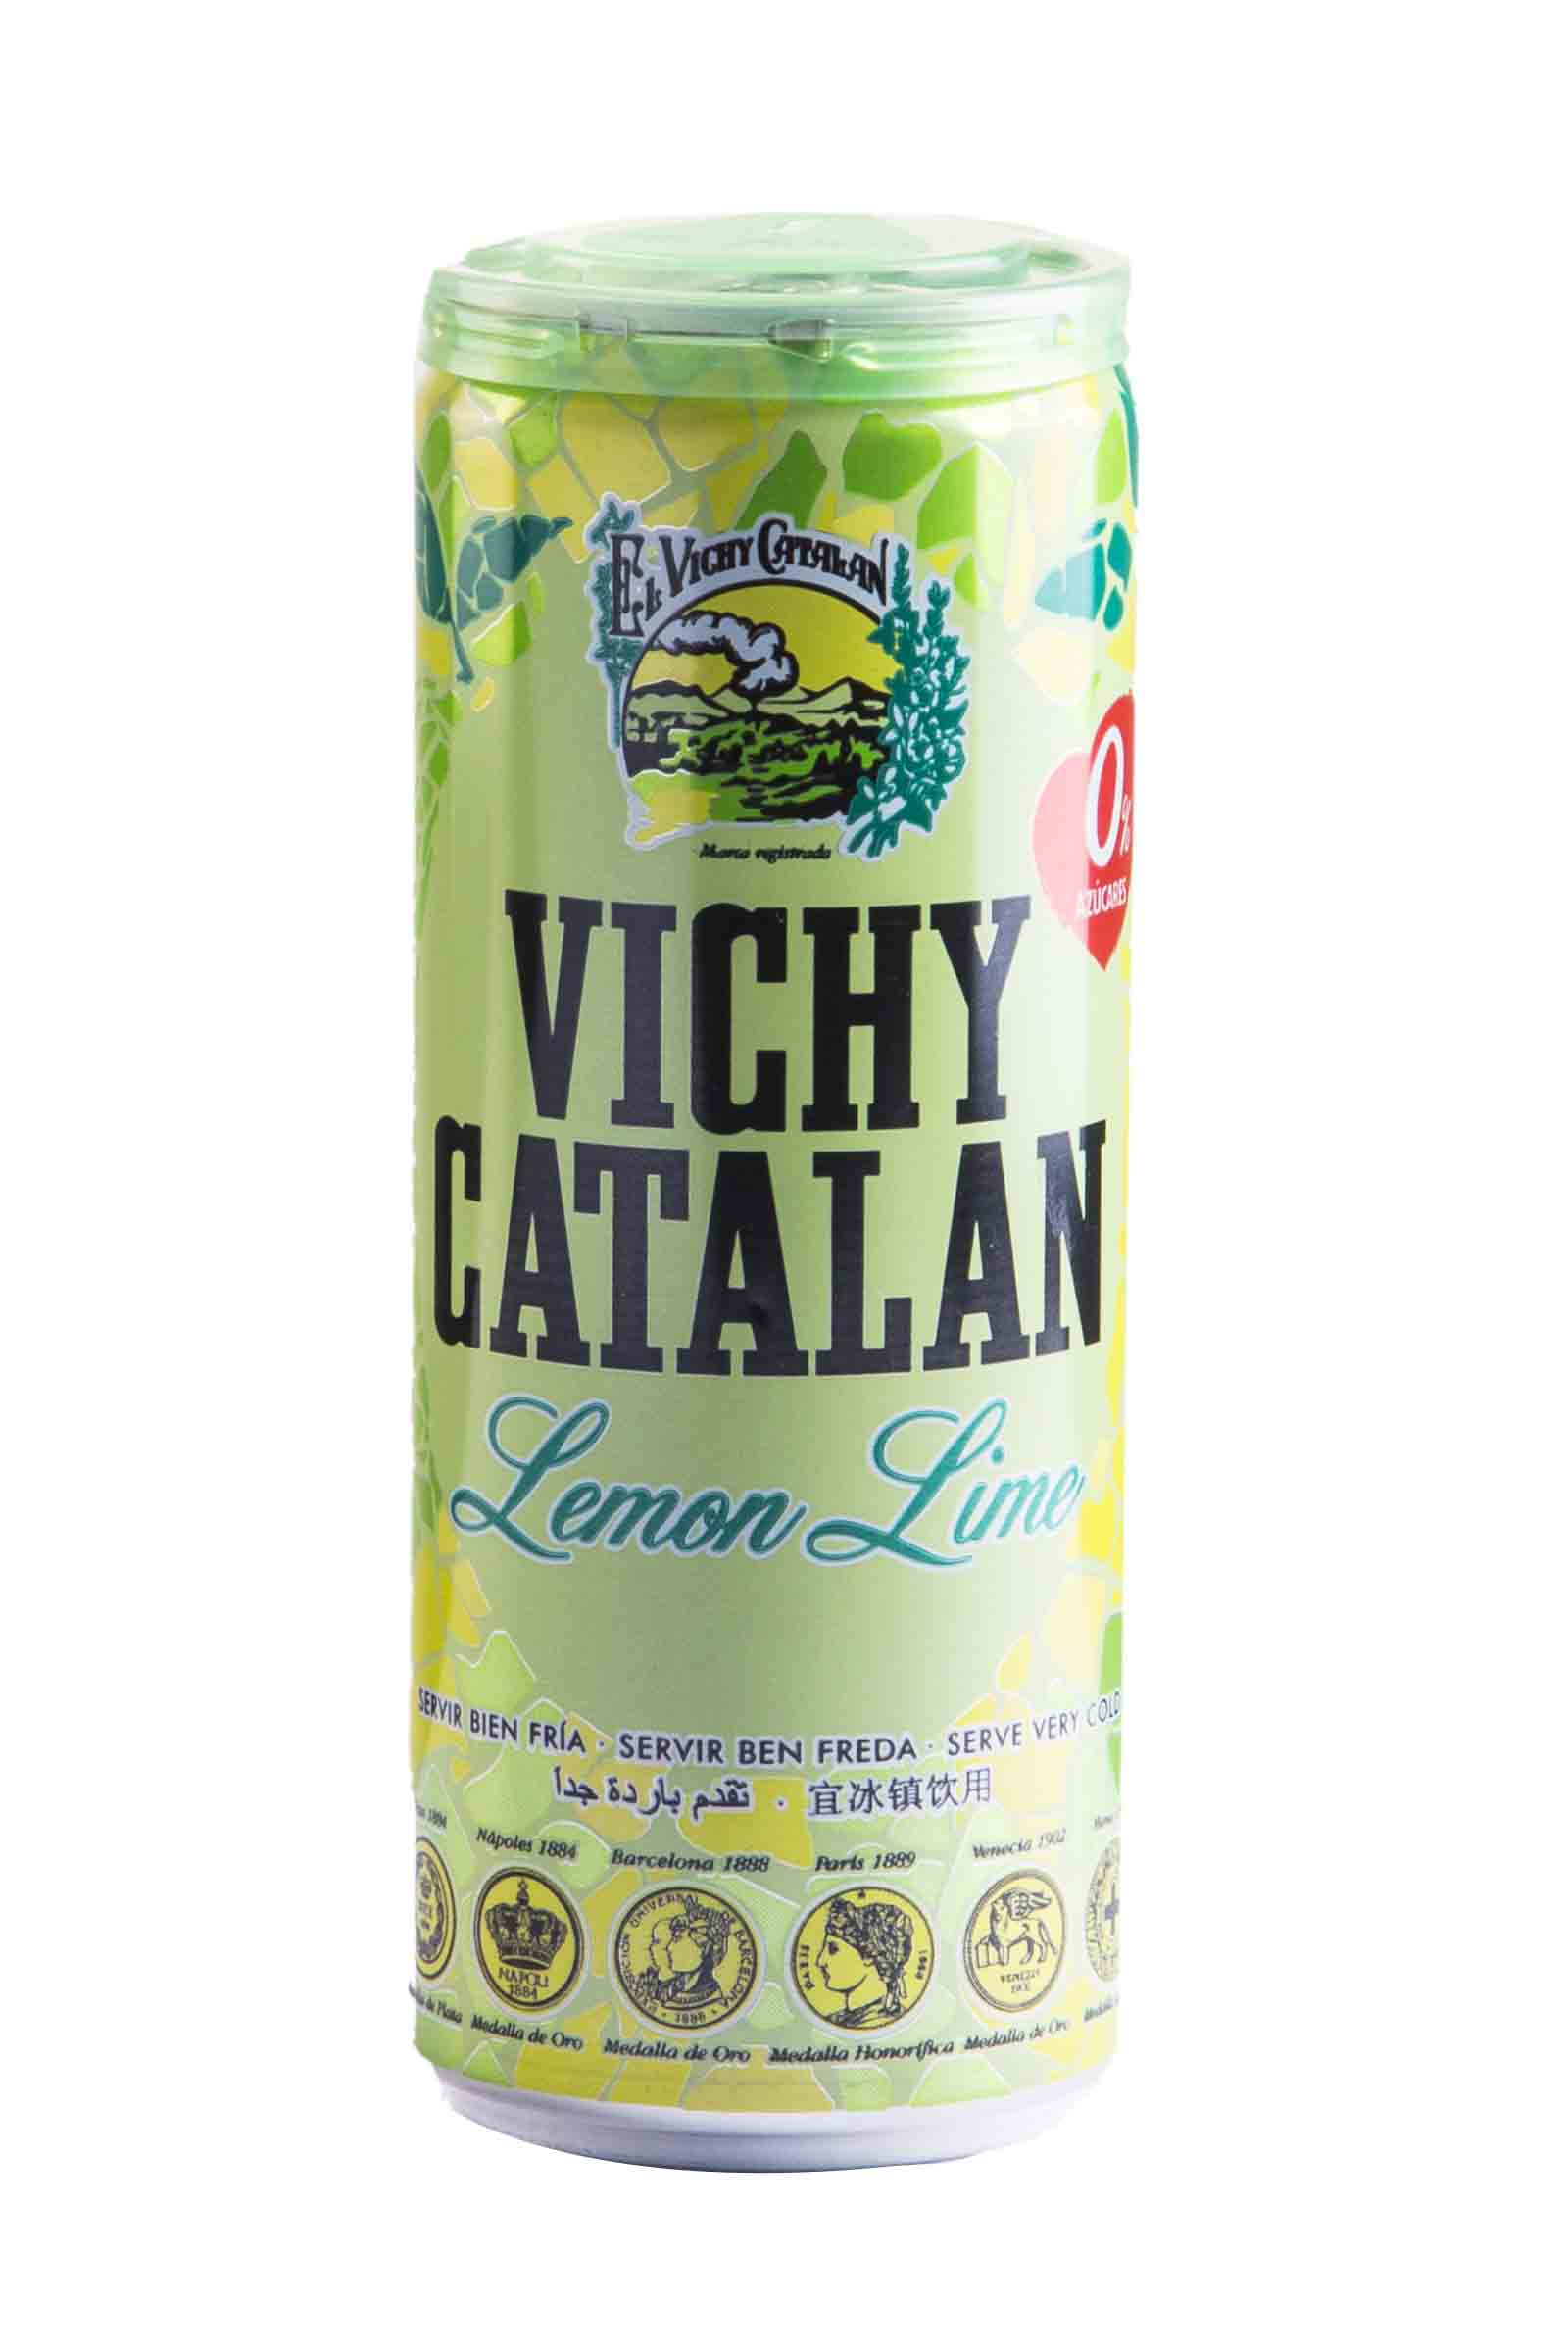 Vichy Catalan Lata Lima-Limon 330ml